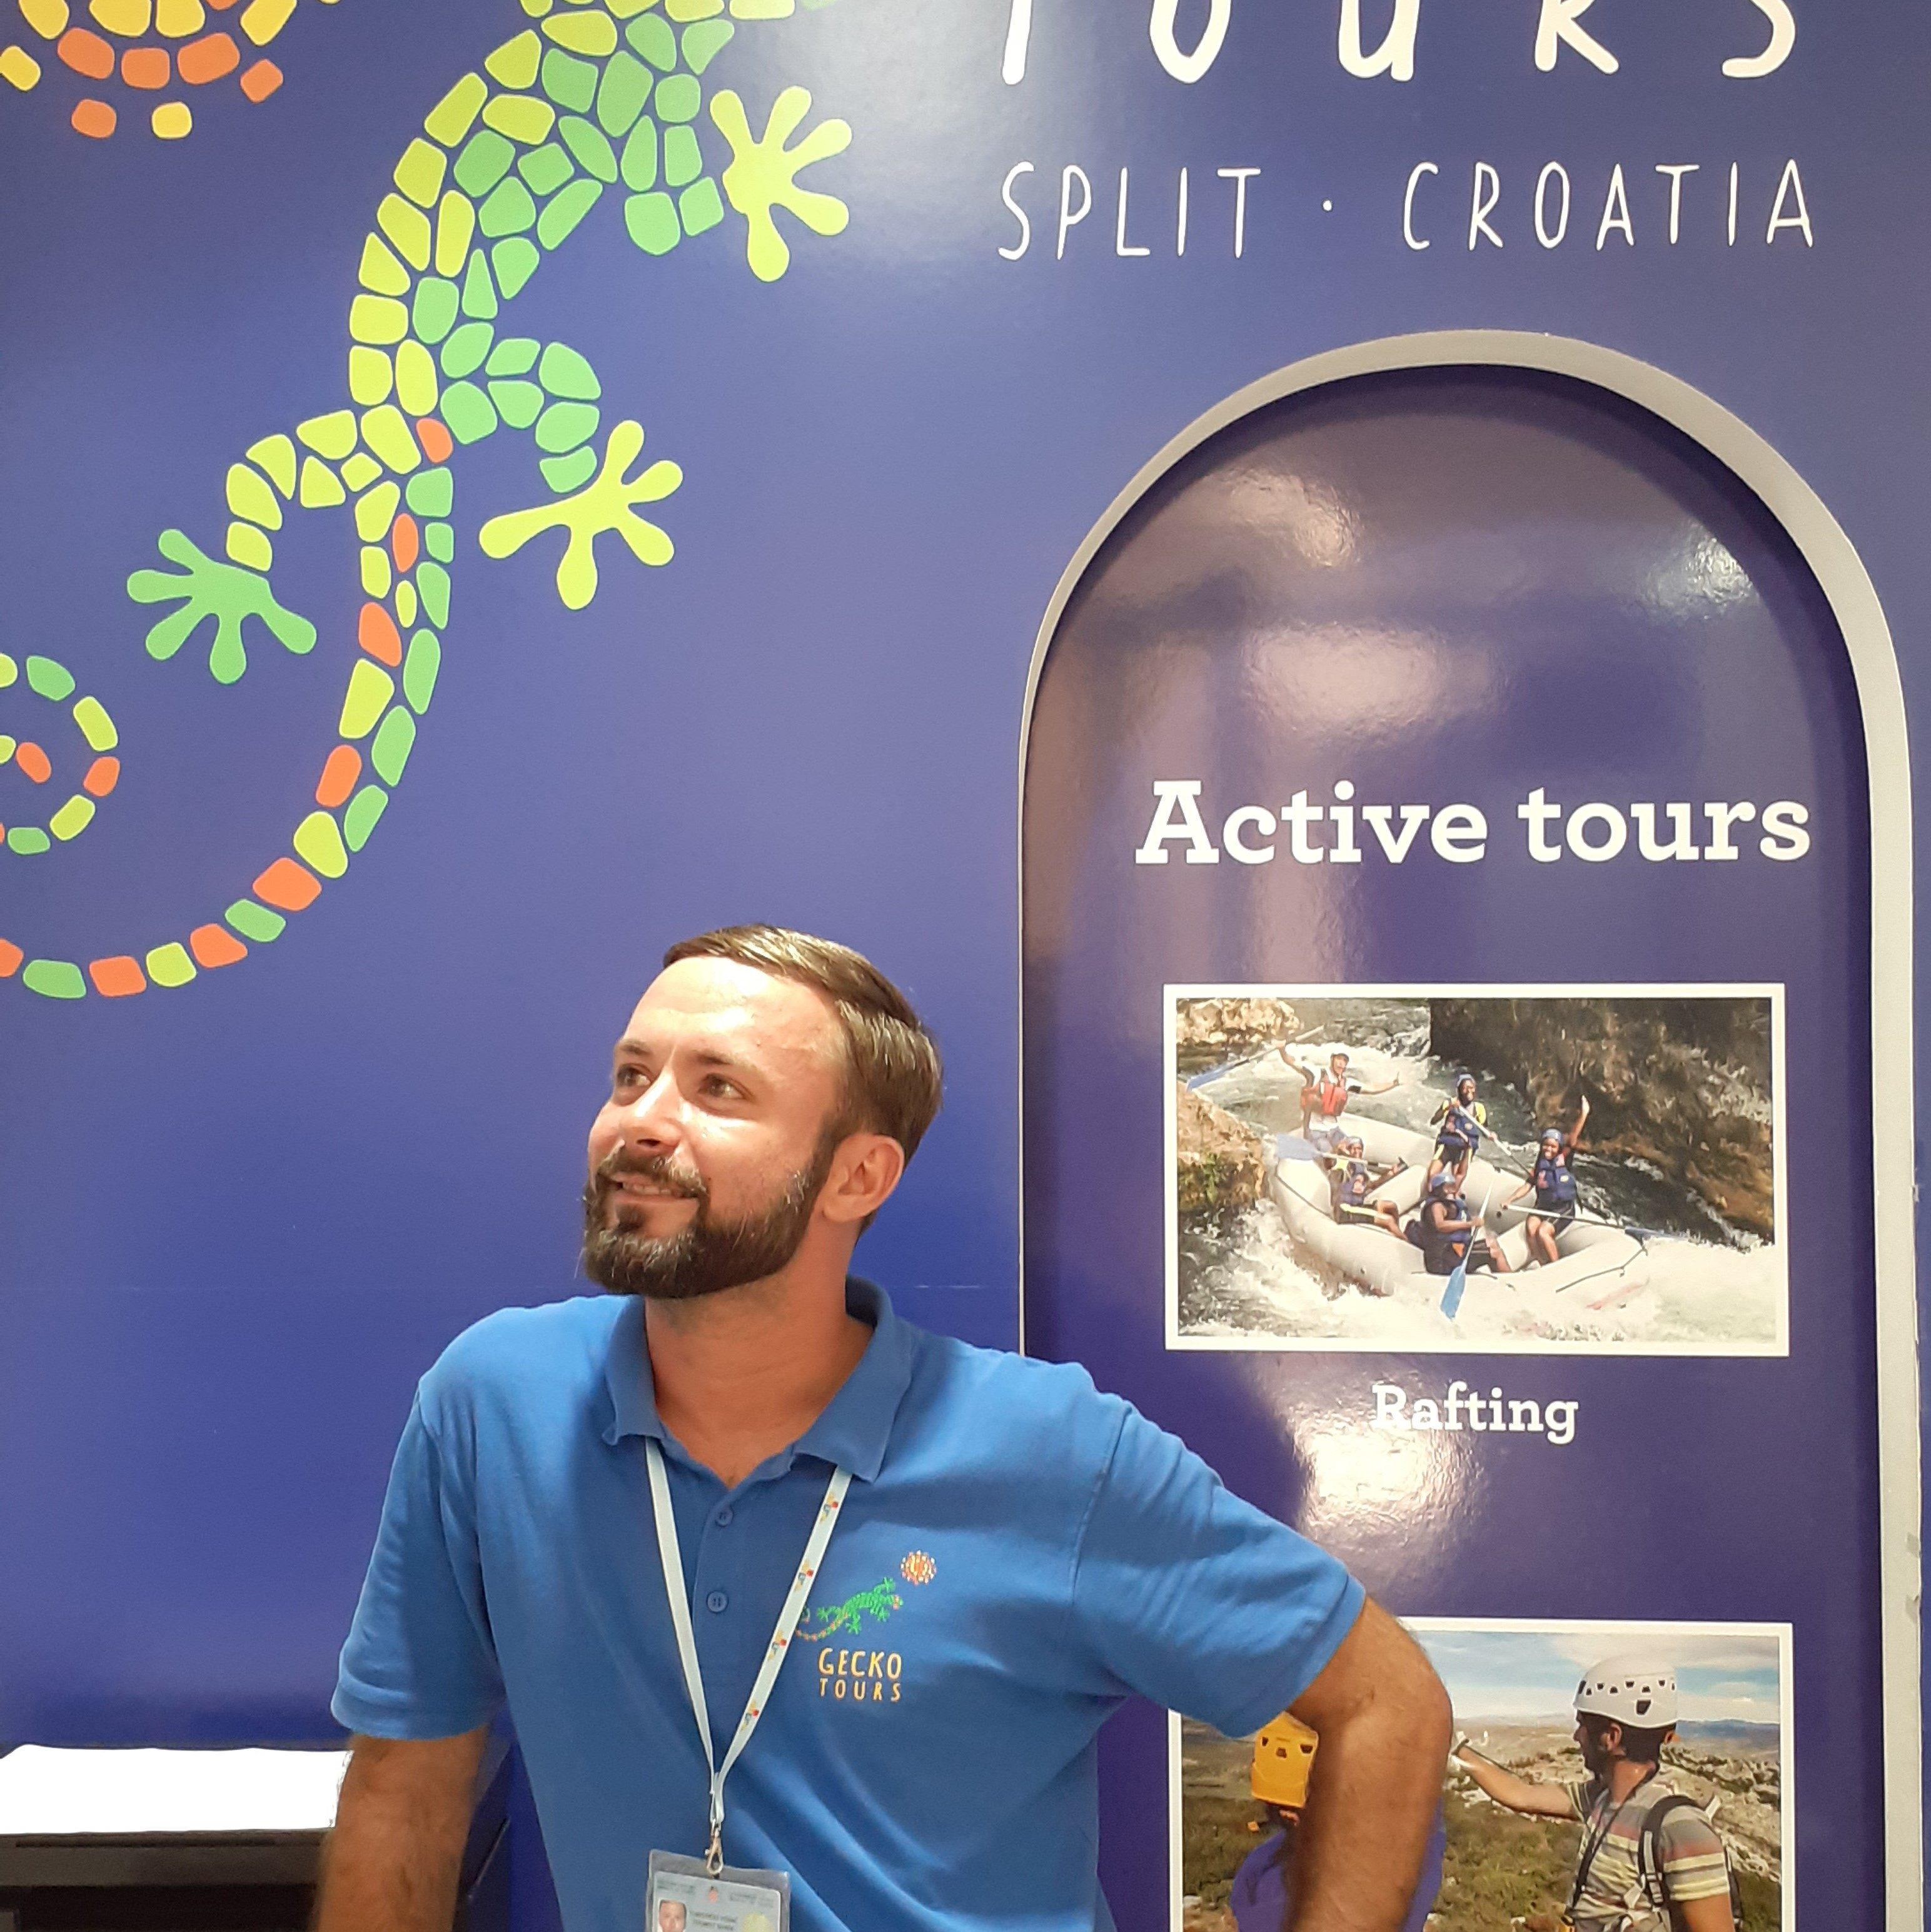 About Us - Gecko Tours